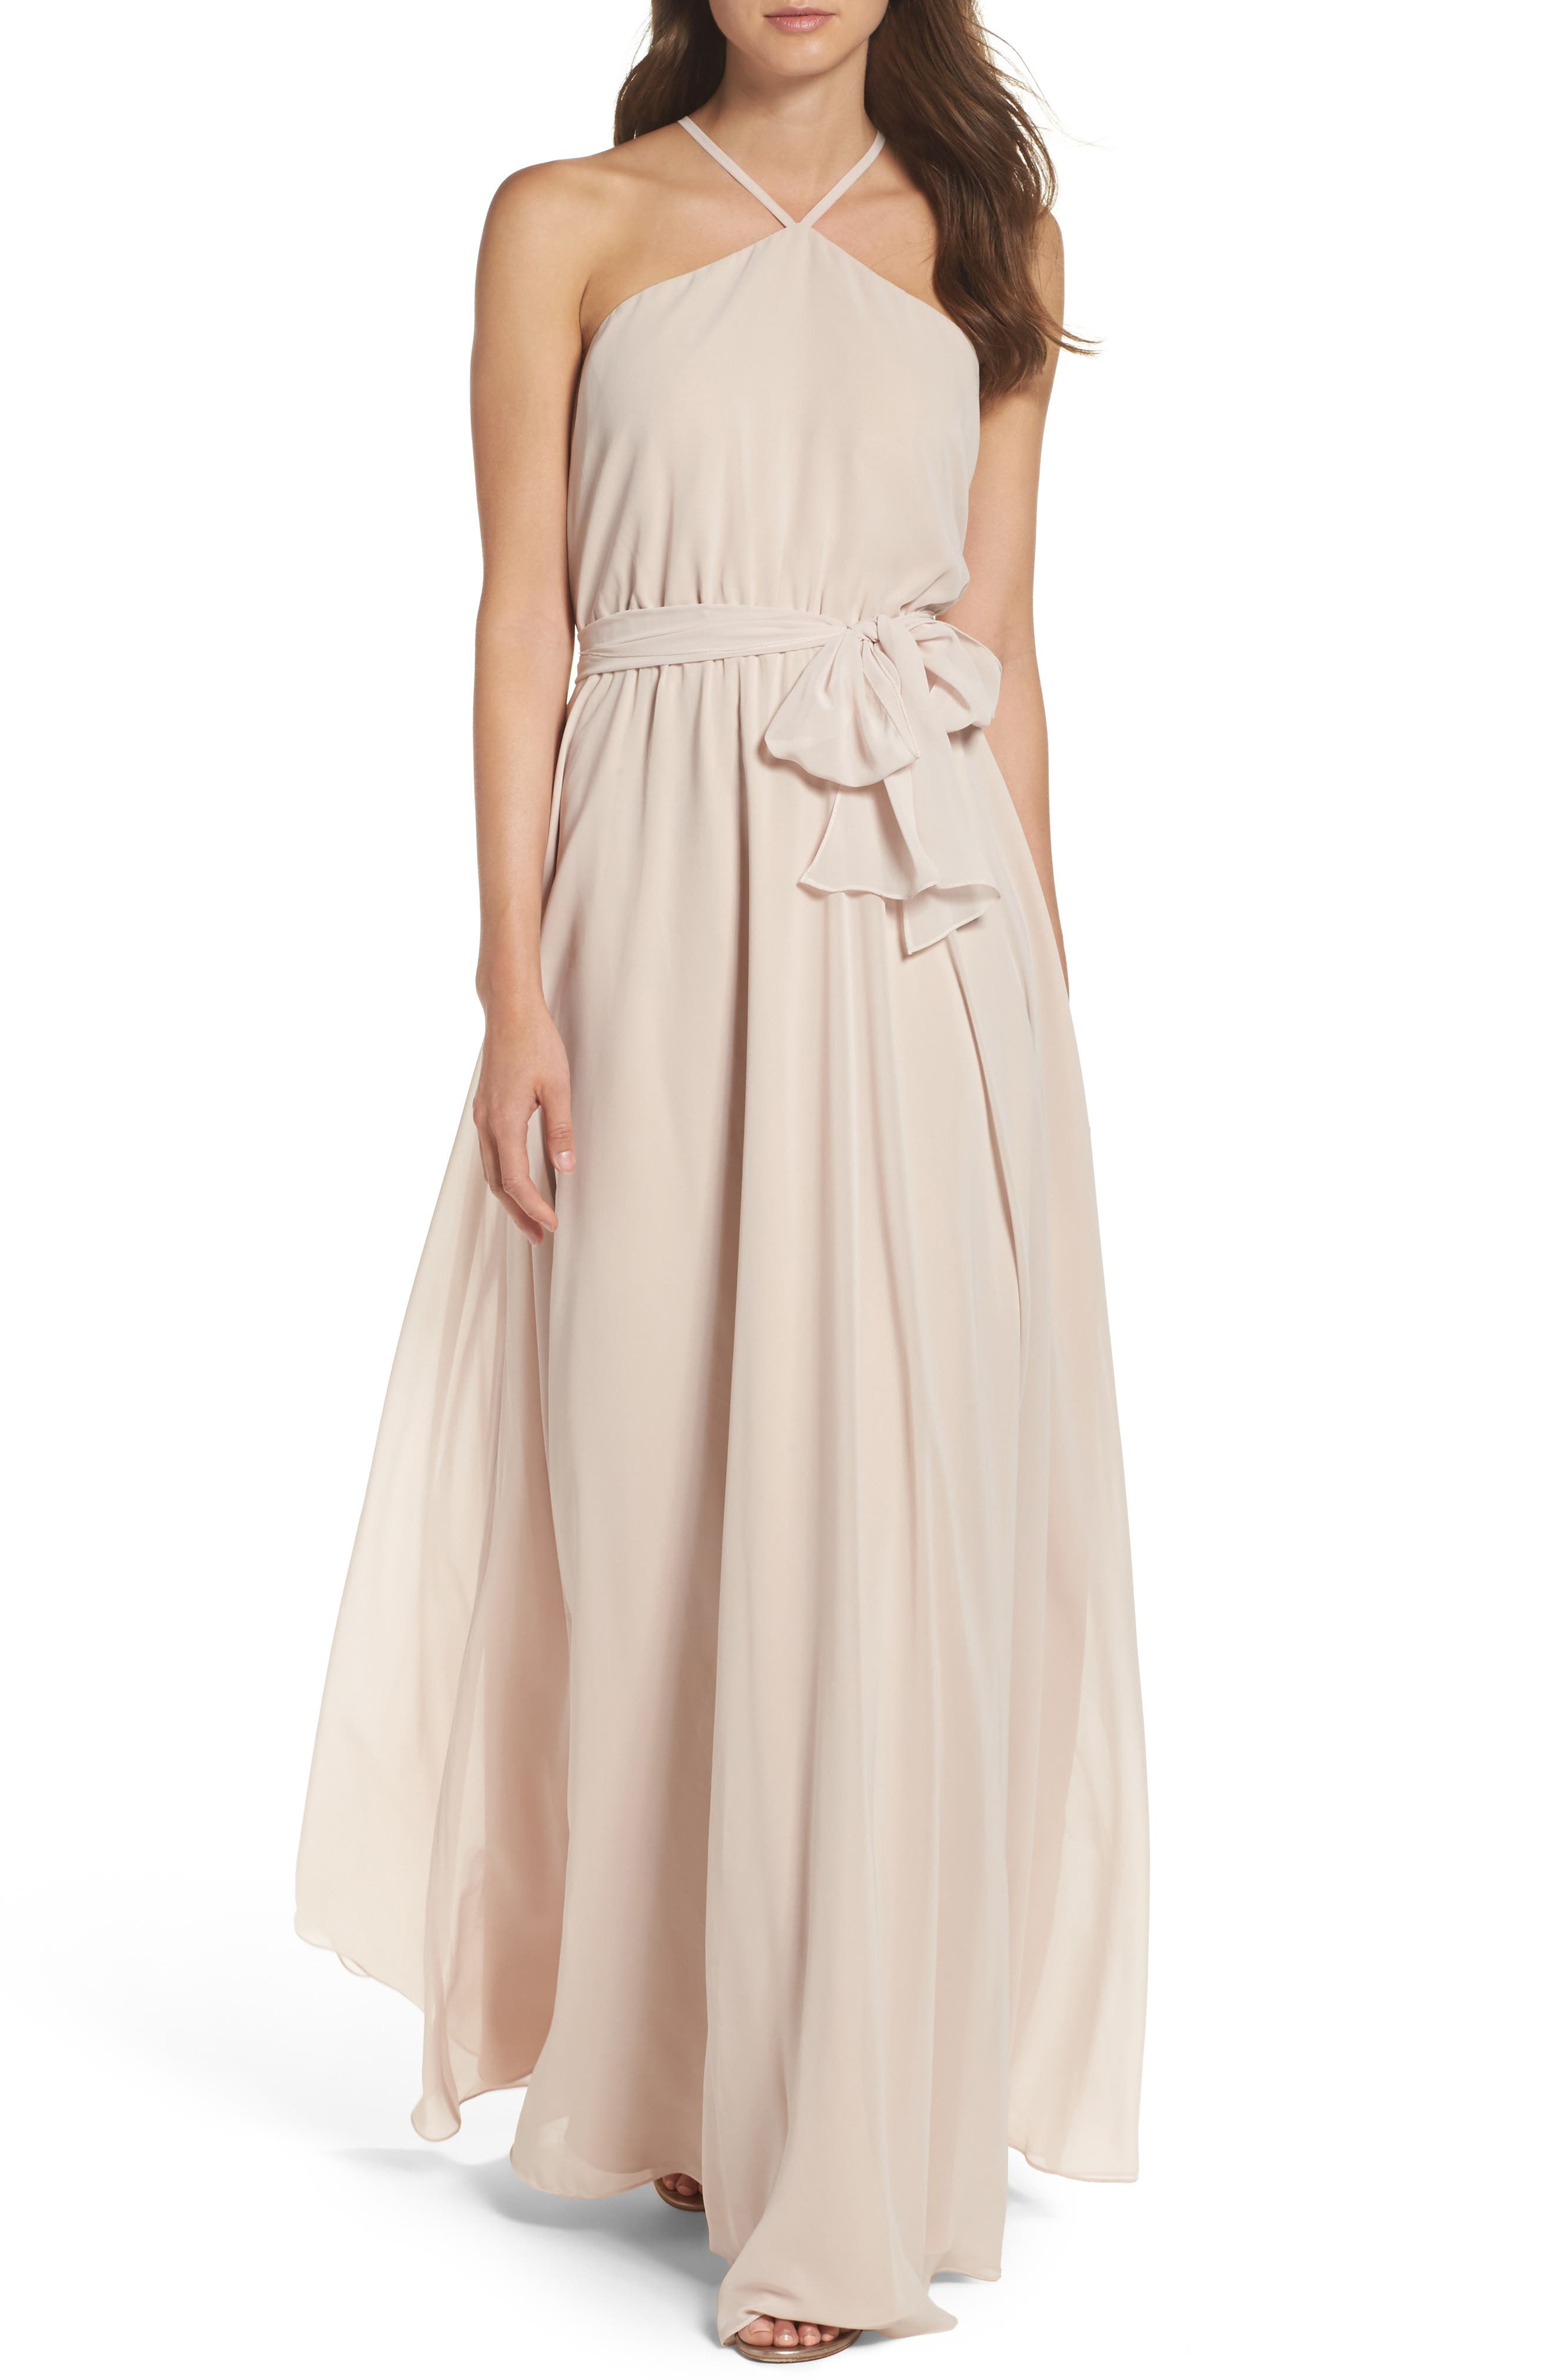 Ceremony by Joanna August Halter Chiffon Gown